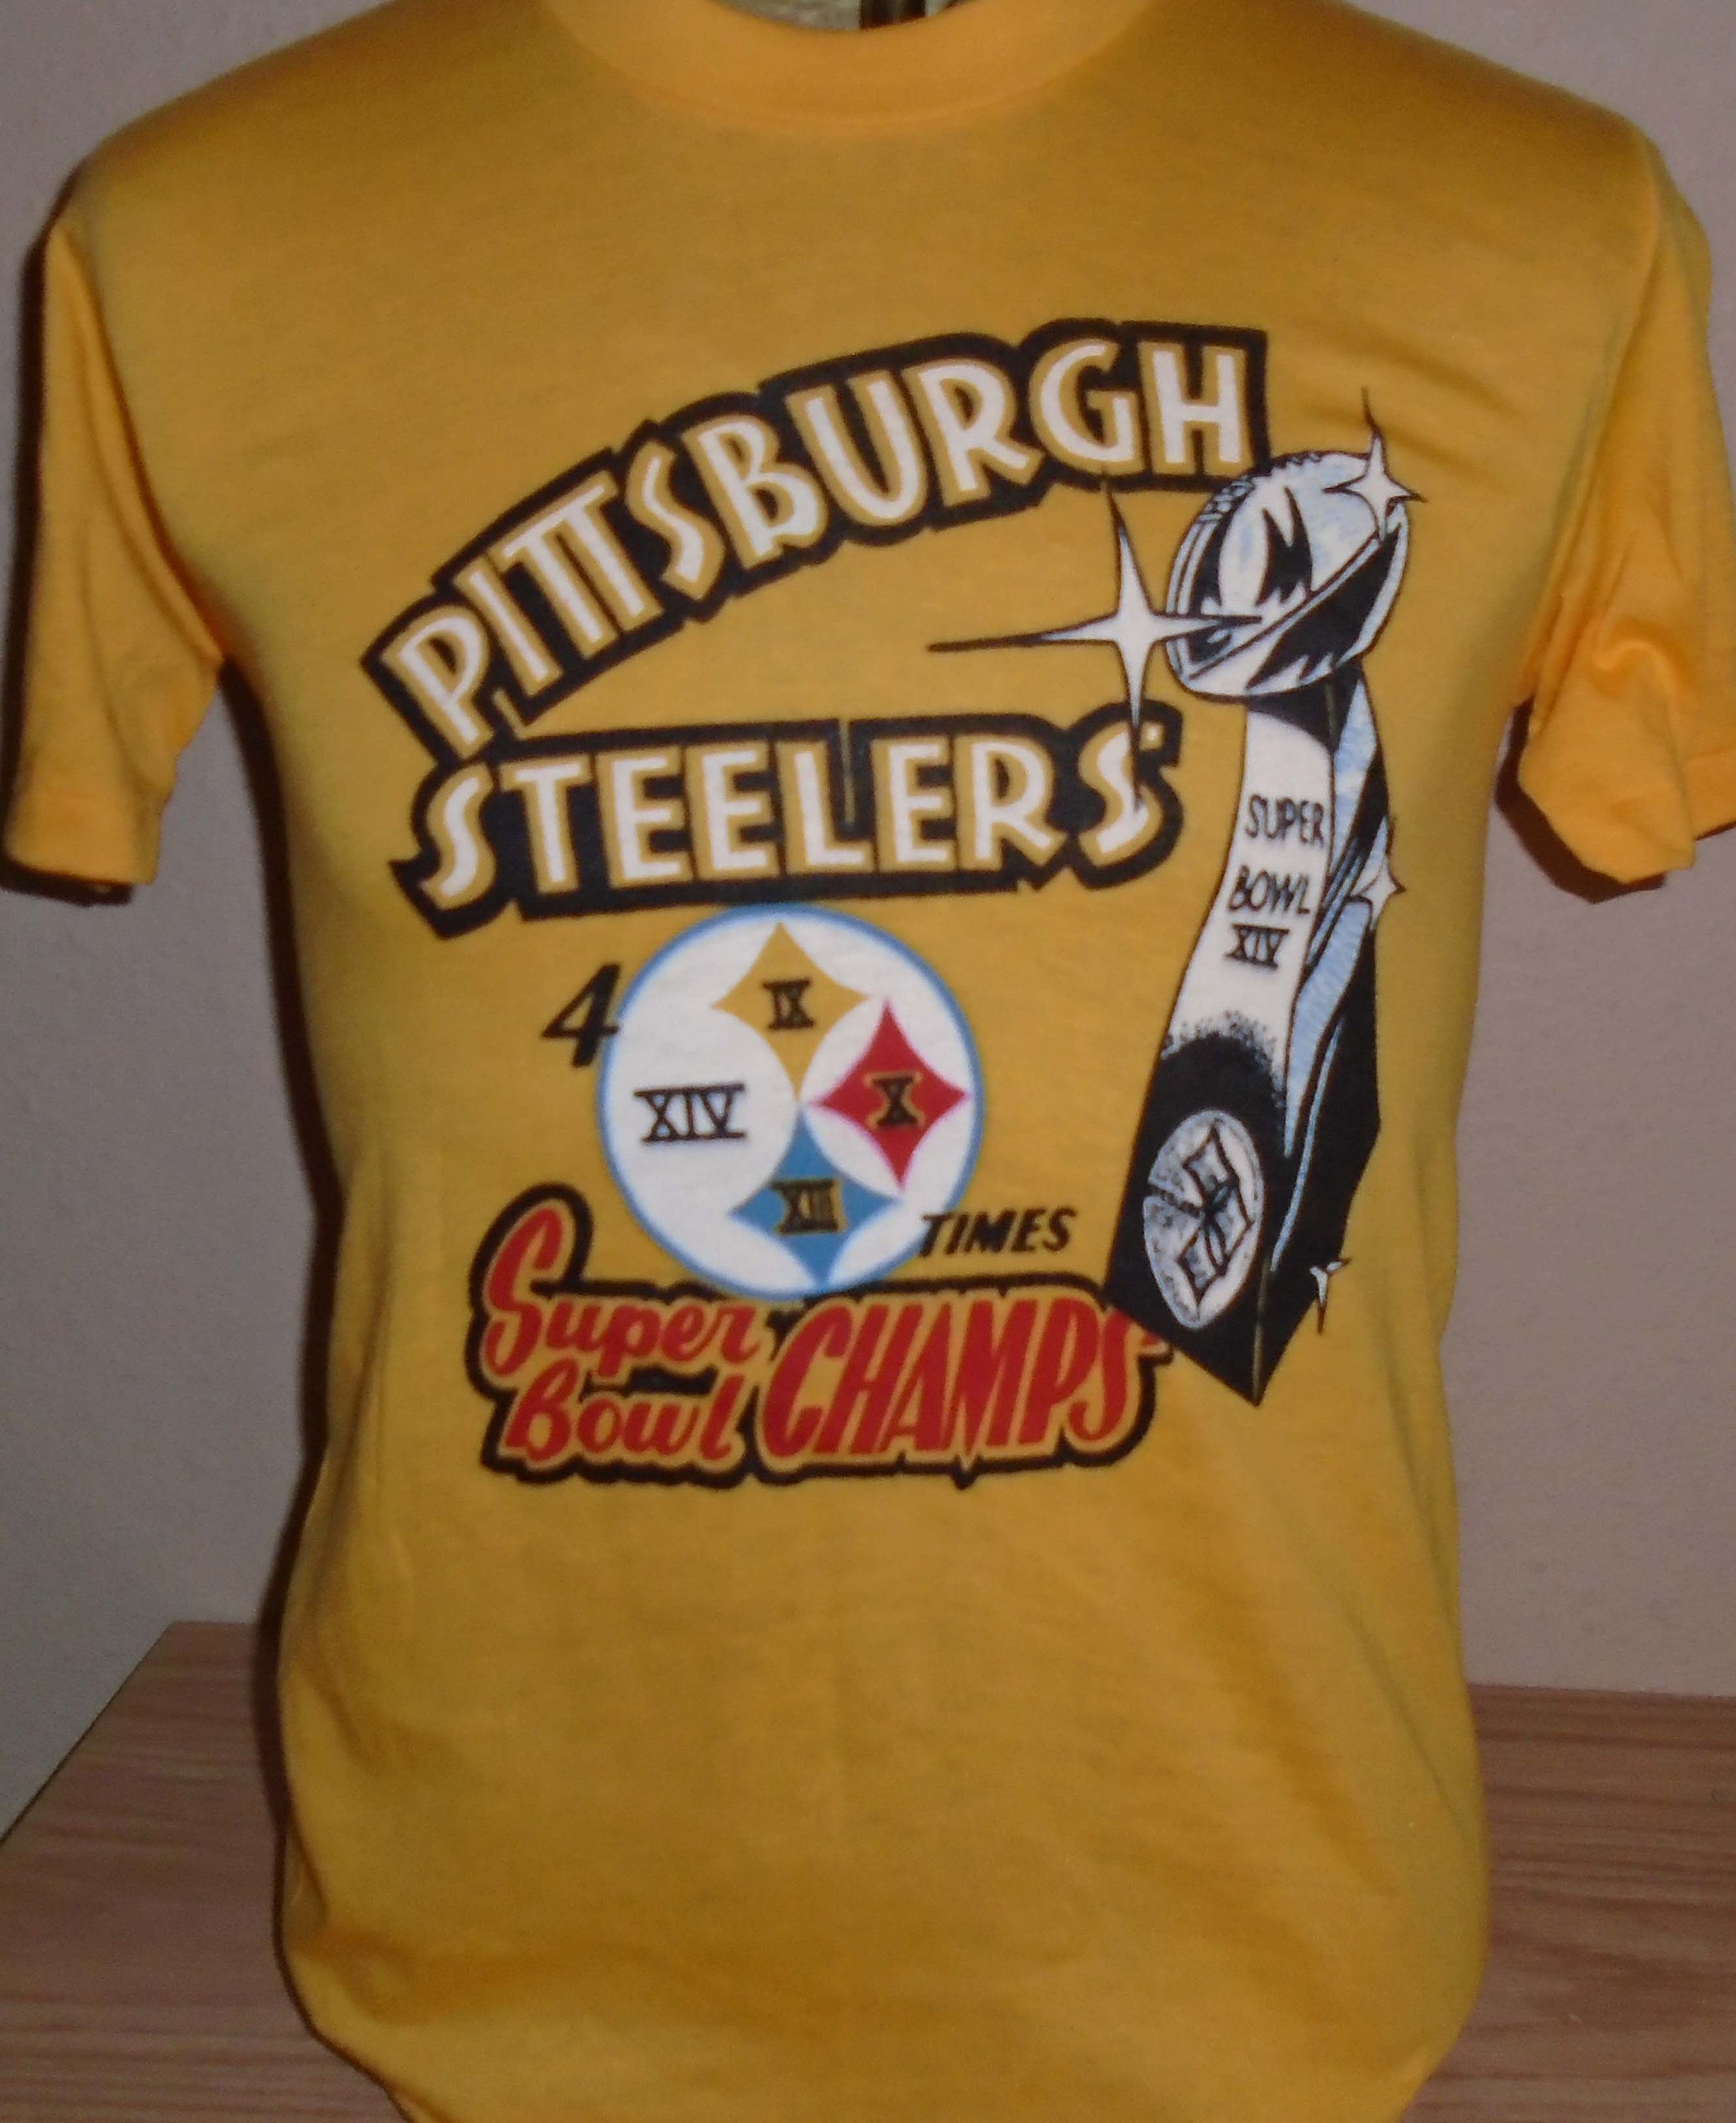 a02b7e5ff vintage 1980s Pittsburgh Steelers Super Bowl t shirt Medium GREAT by  vintagerhino247 on Etsy